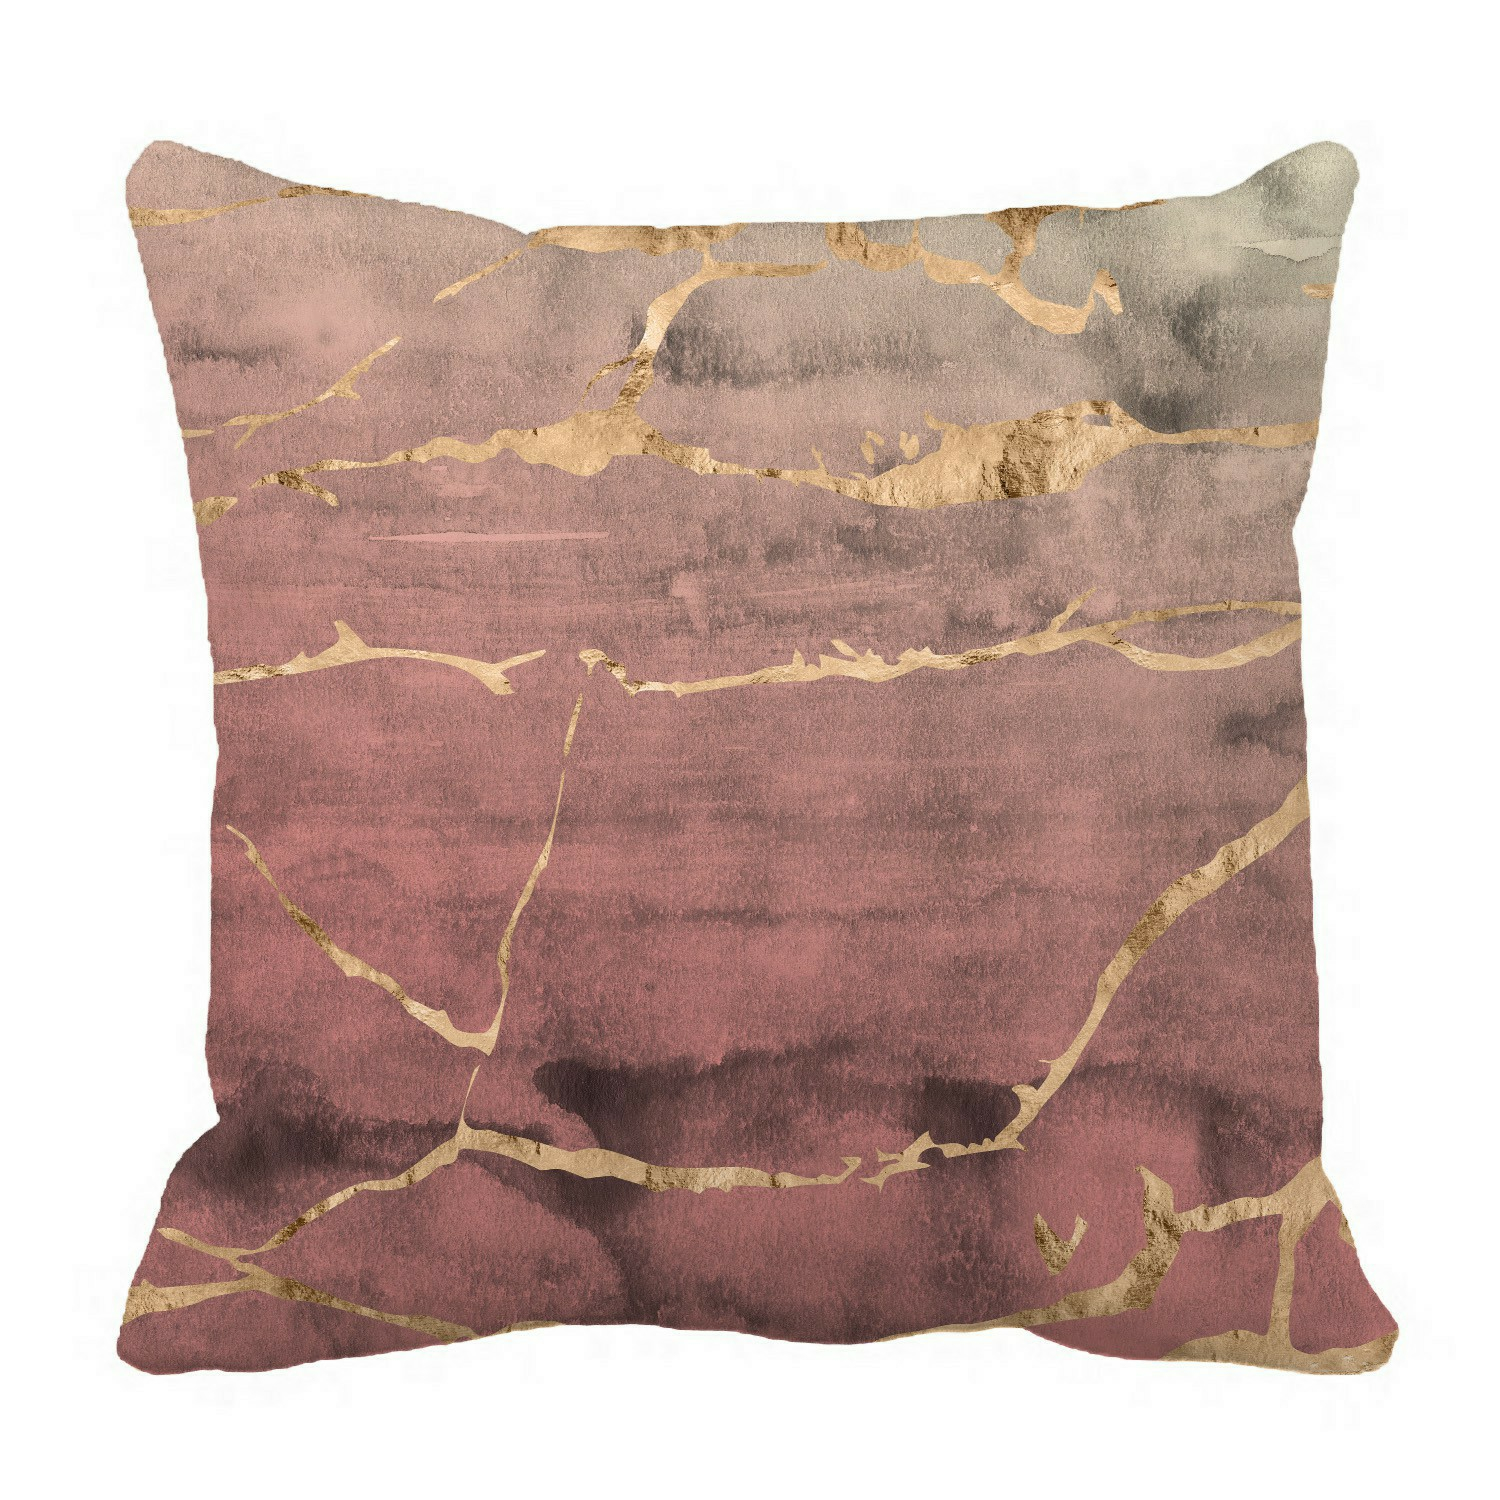 eczjnt rose gold metallic marble pillow case cover set 20x20 inch